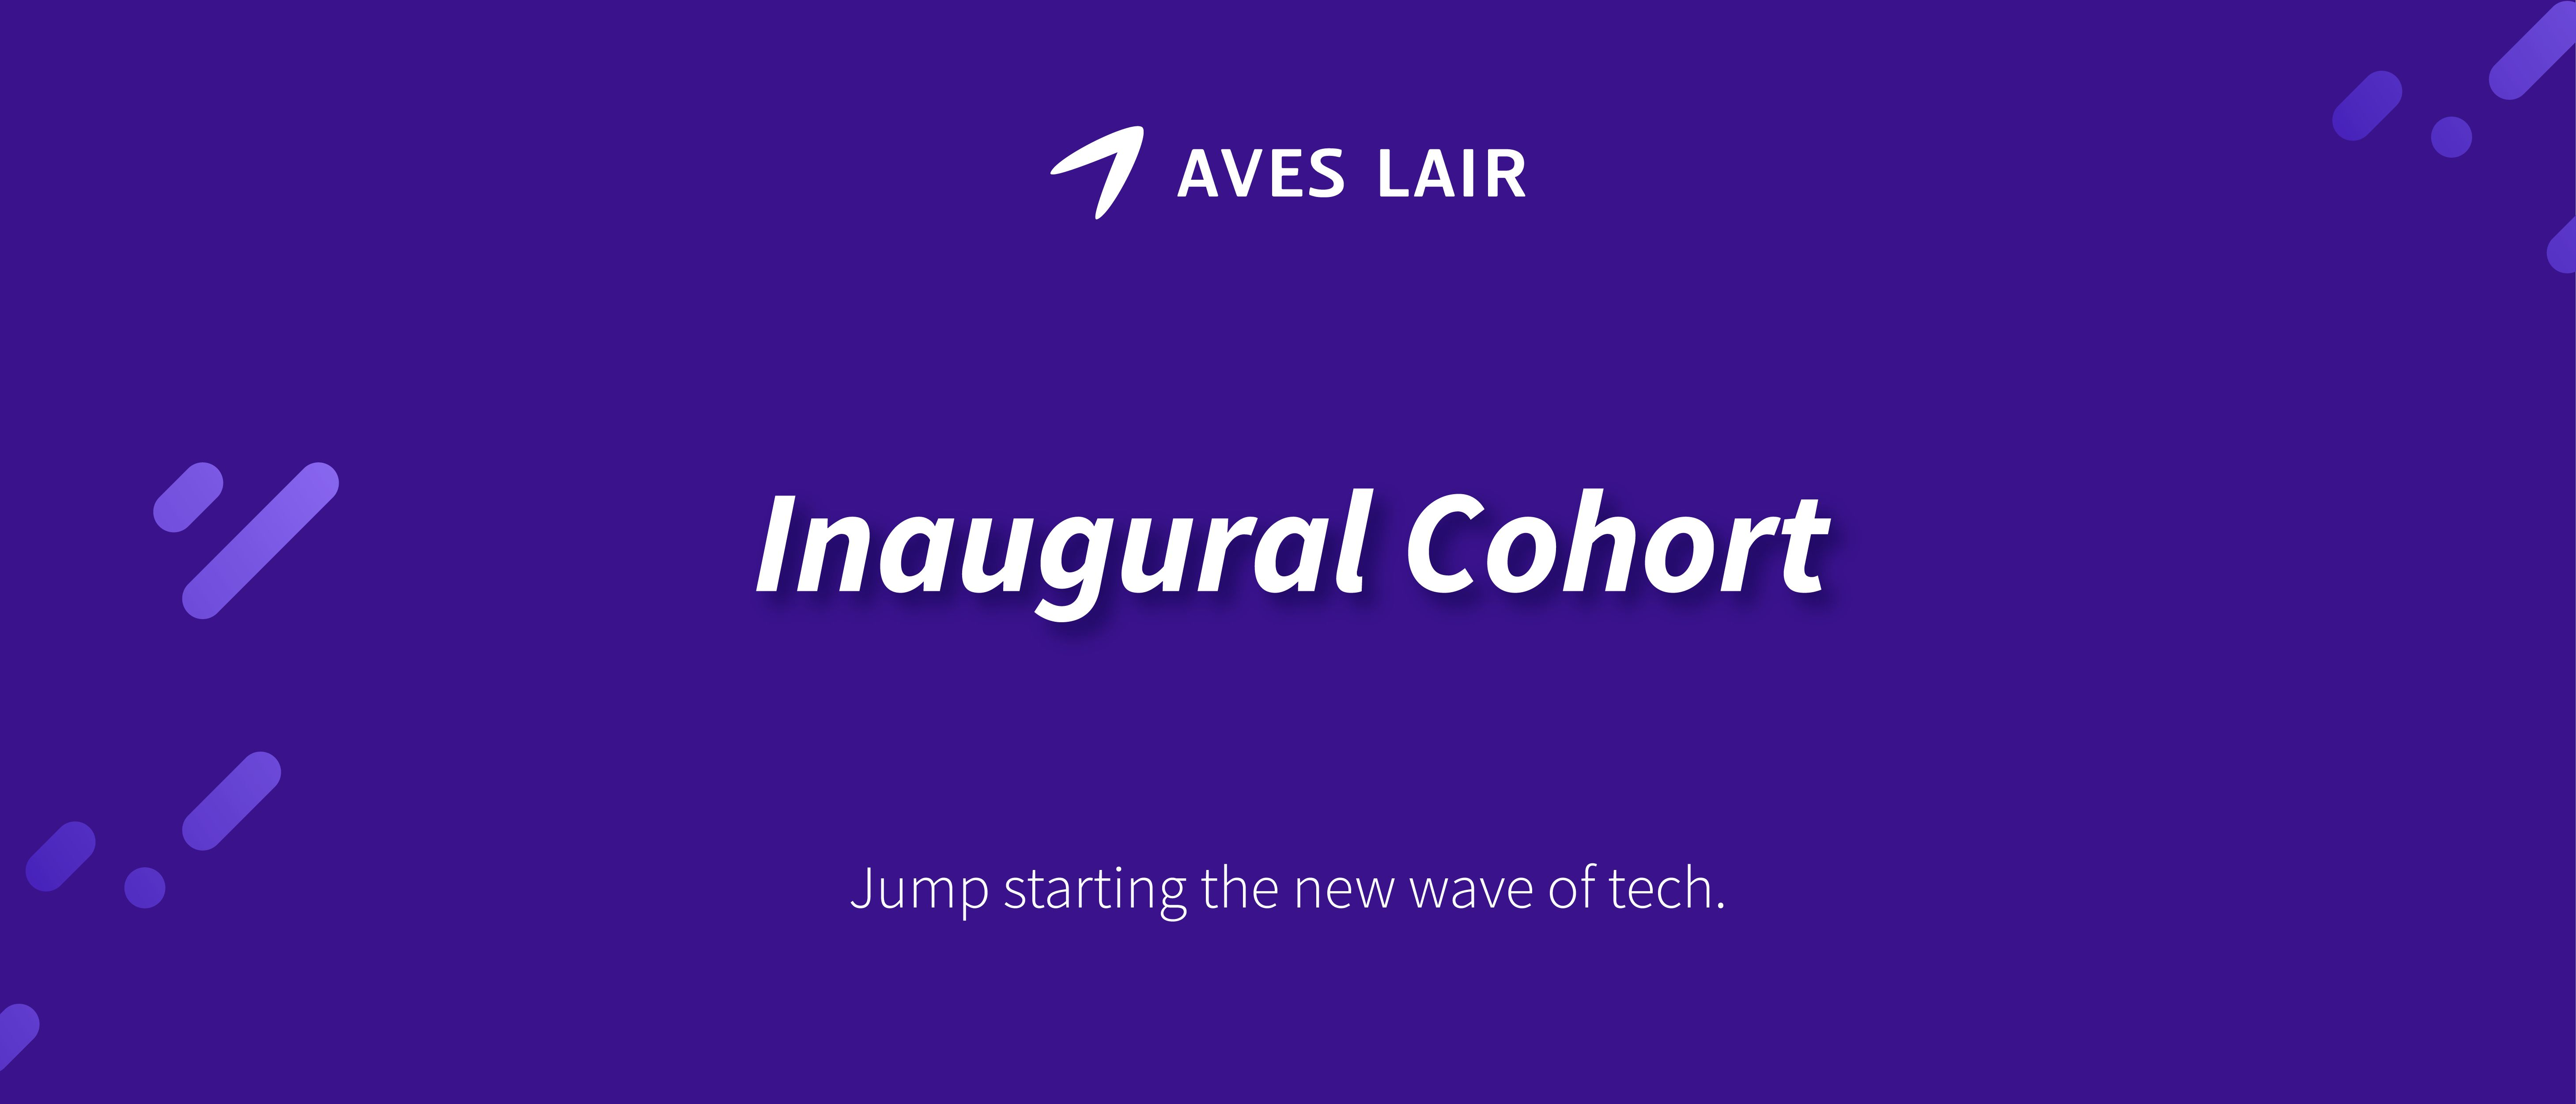 /aves-lair-announces-three-startups-comprising-inaugural-accelerator-cohort-t7f34uz feature image